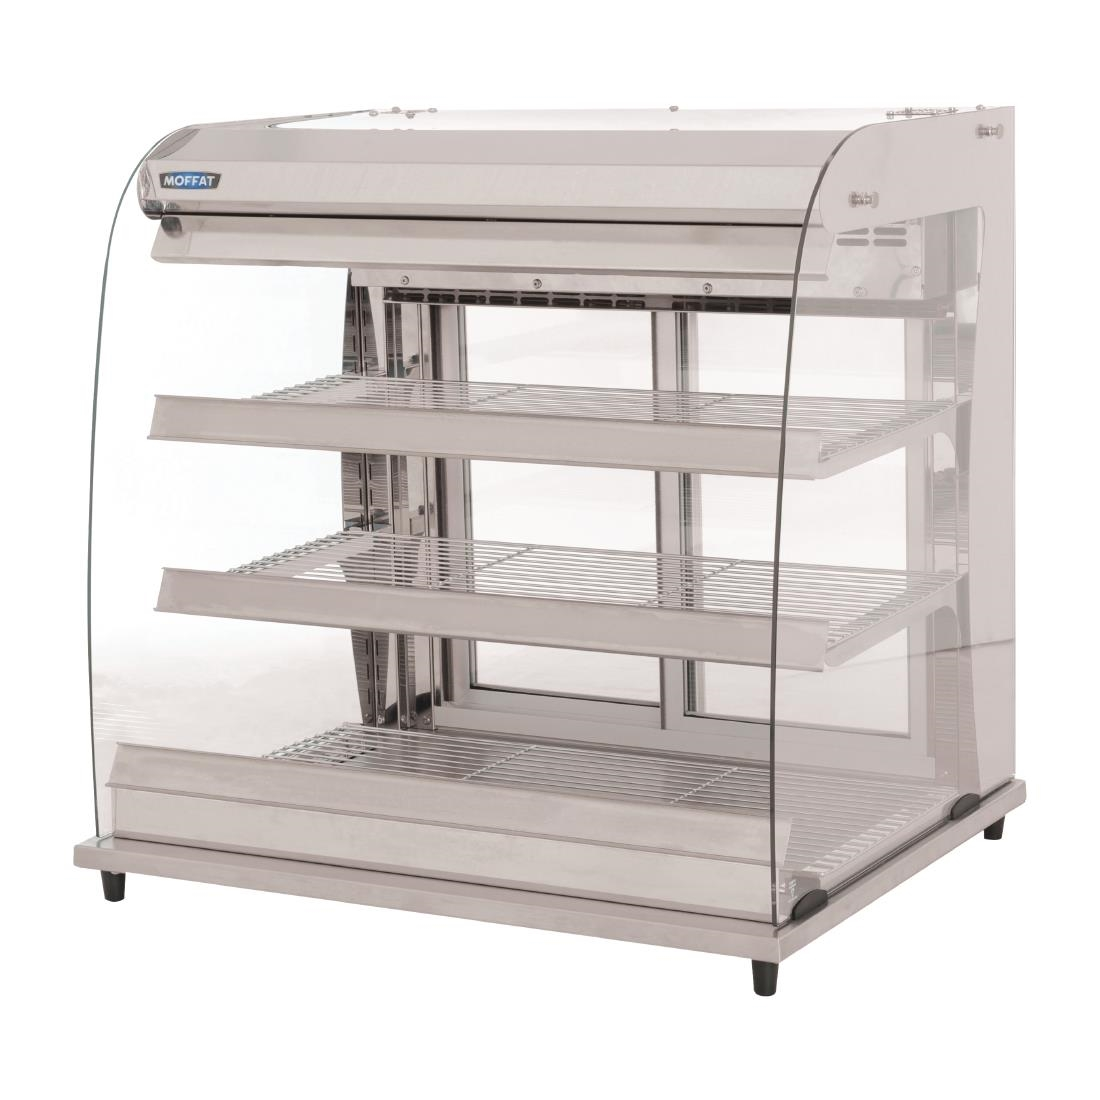 Image of Moffat Countertop Heated Display Unit GGHT2